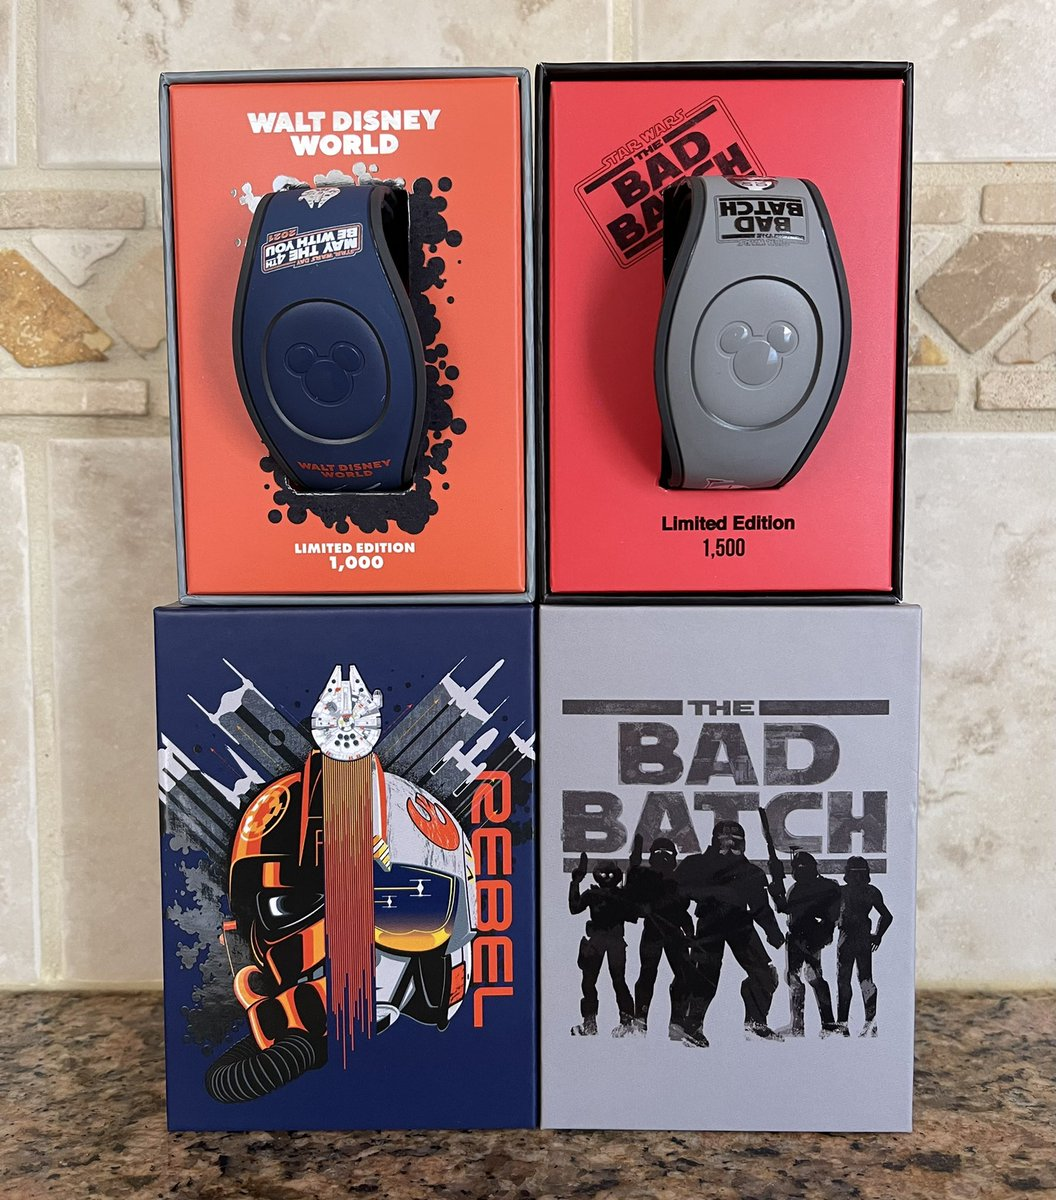 Mail Call! Got some new Star Wars MagicBands!  #MagicBand #DisneyWorld #StarWars #TheBadBatch #MayTheFourthBeWithYou #MayThe4thBeWithYou #DisneyStore #ShopDisney #DisPops